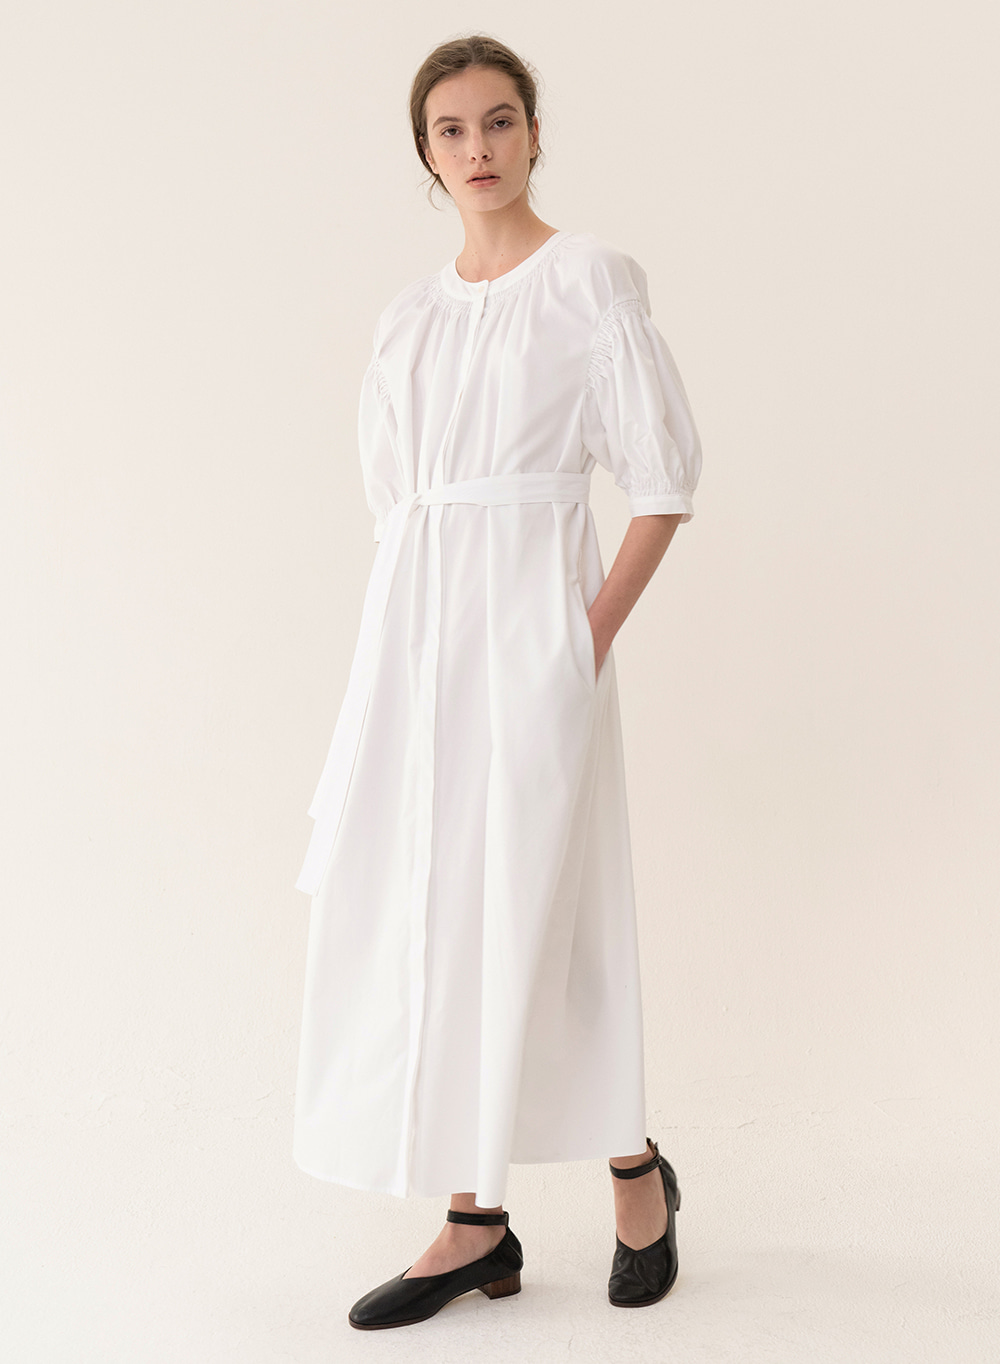 [ESSENTIAL] Original Balloon Dress White